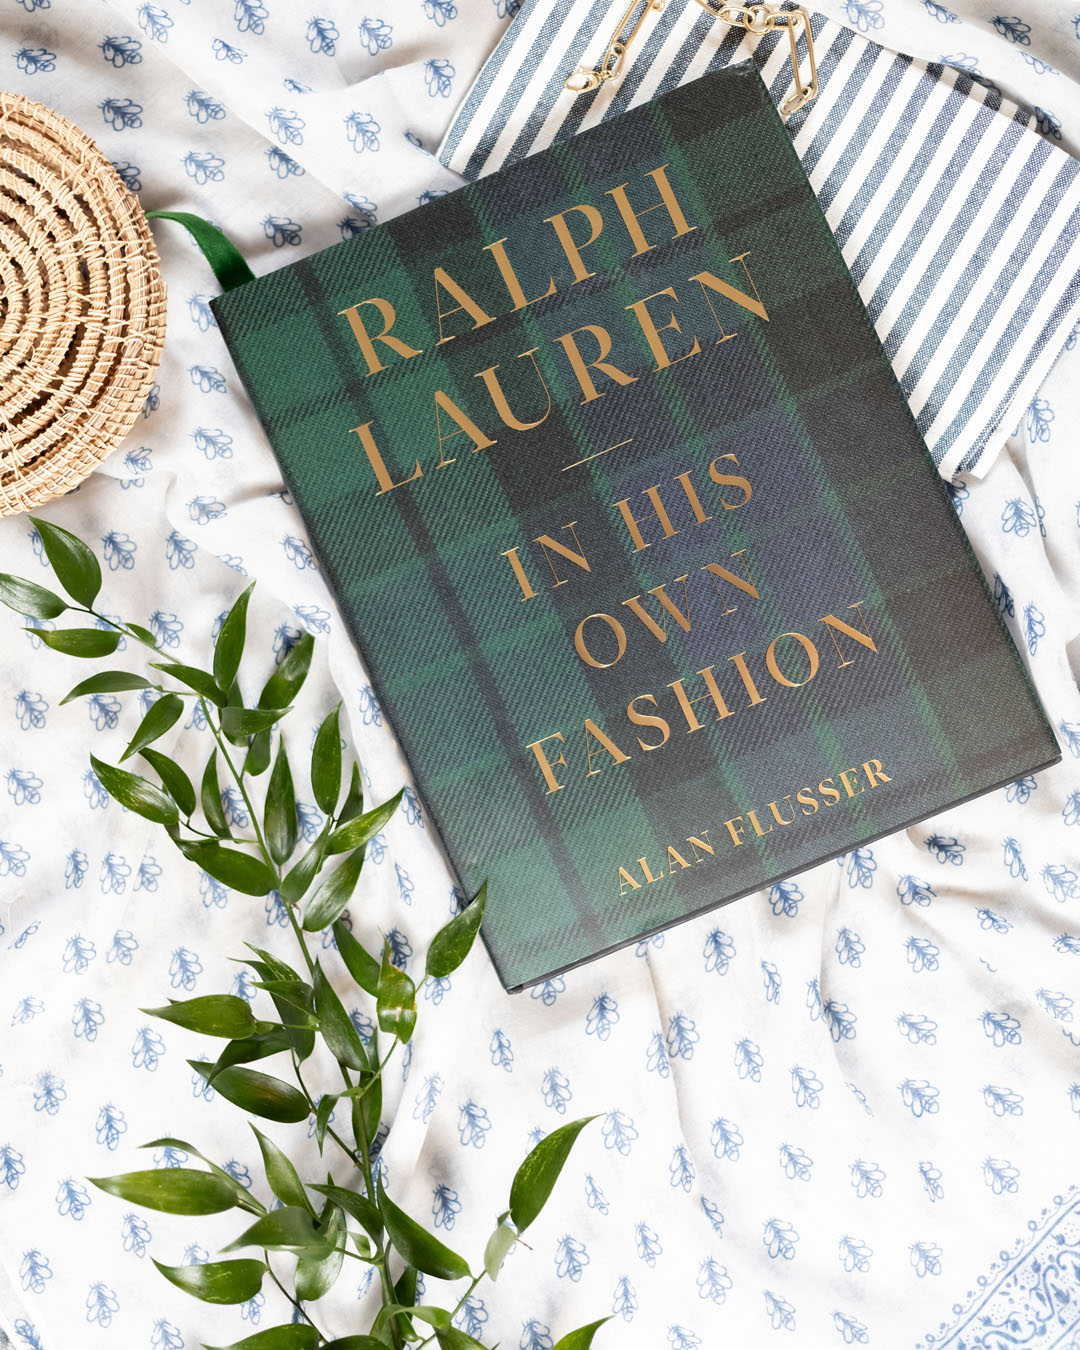 In today's post I'll share my thoughts on the book Ralph Lauren: In His Own Fashion. If you've been curious about this one, read on!